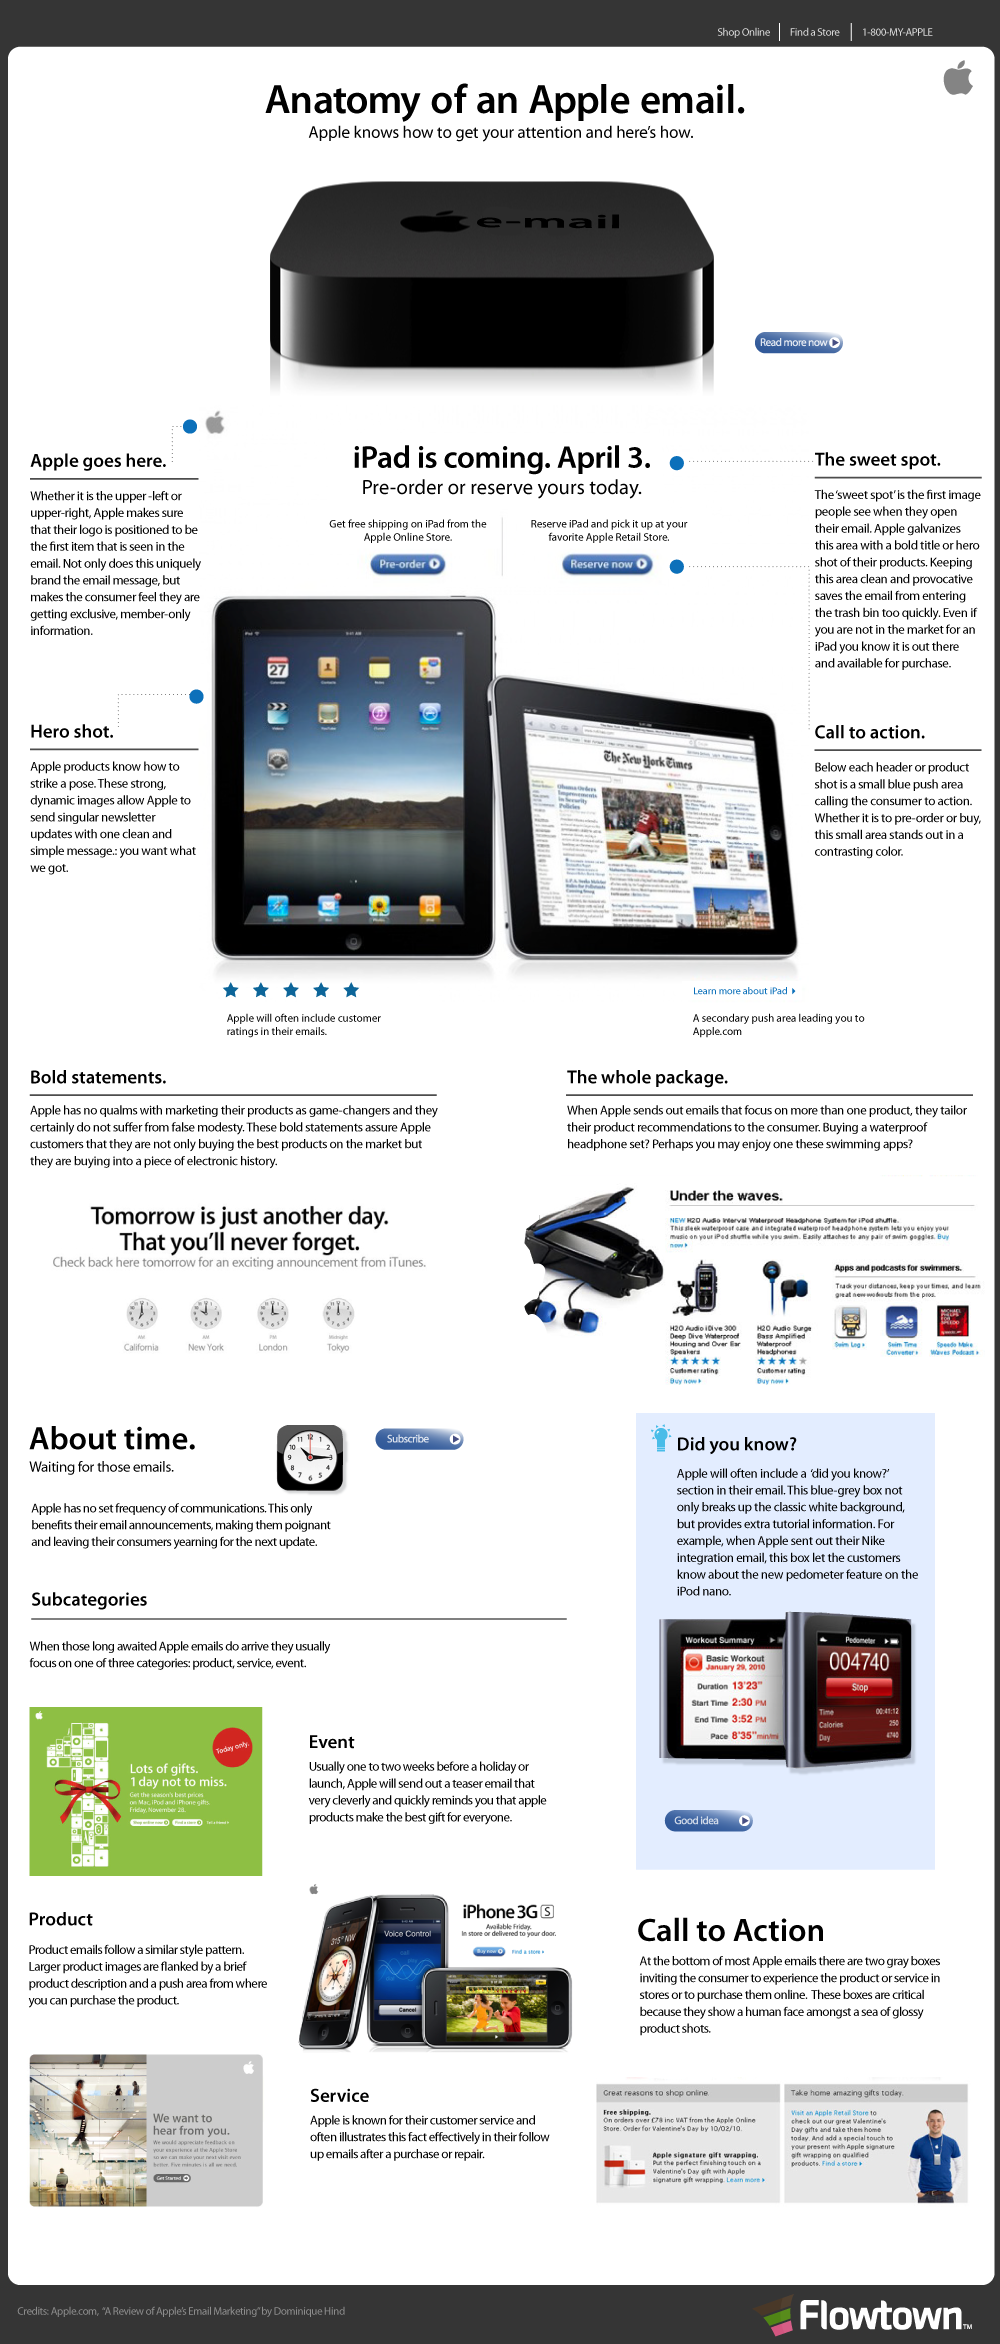 Anatomy of an Apple Email [Infographic]